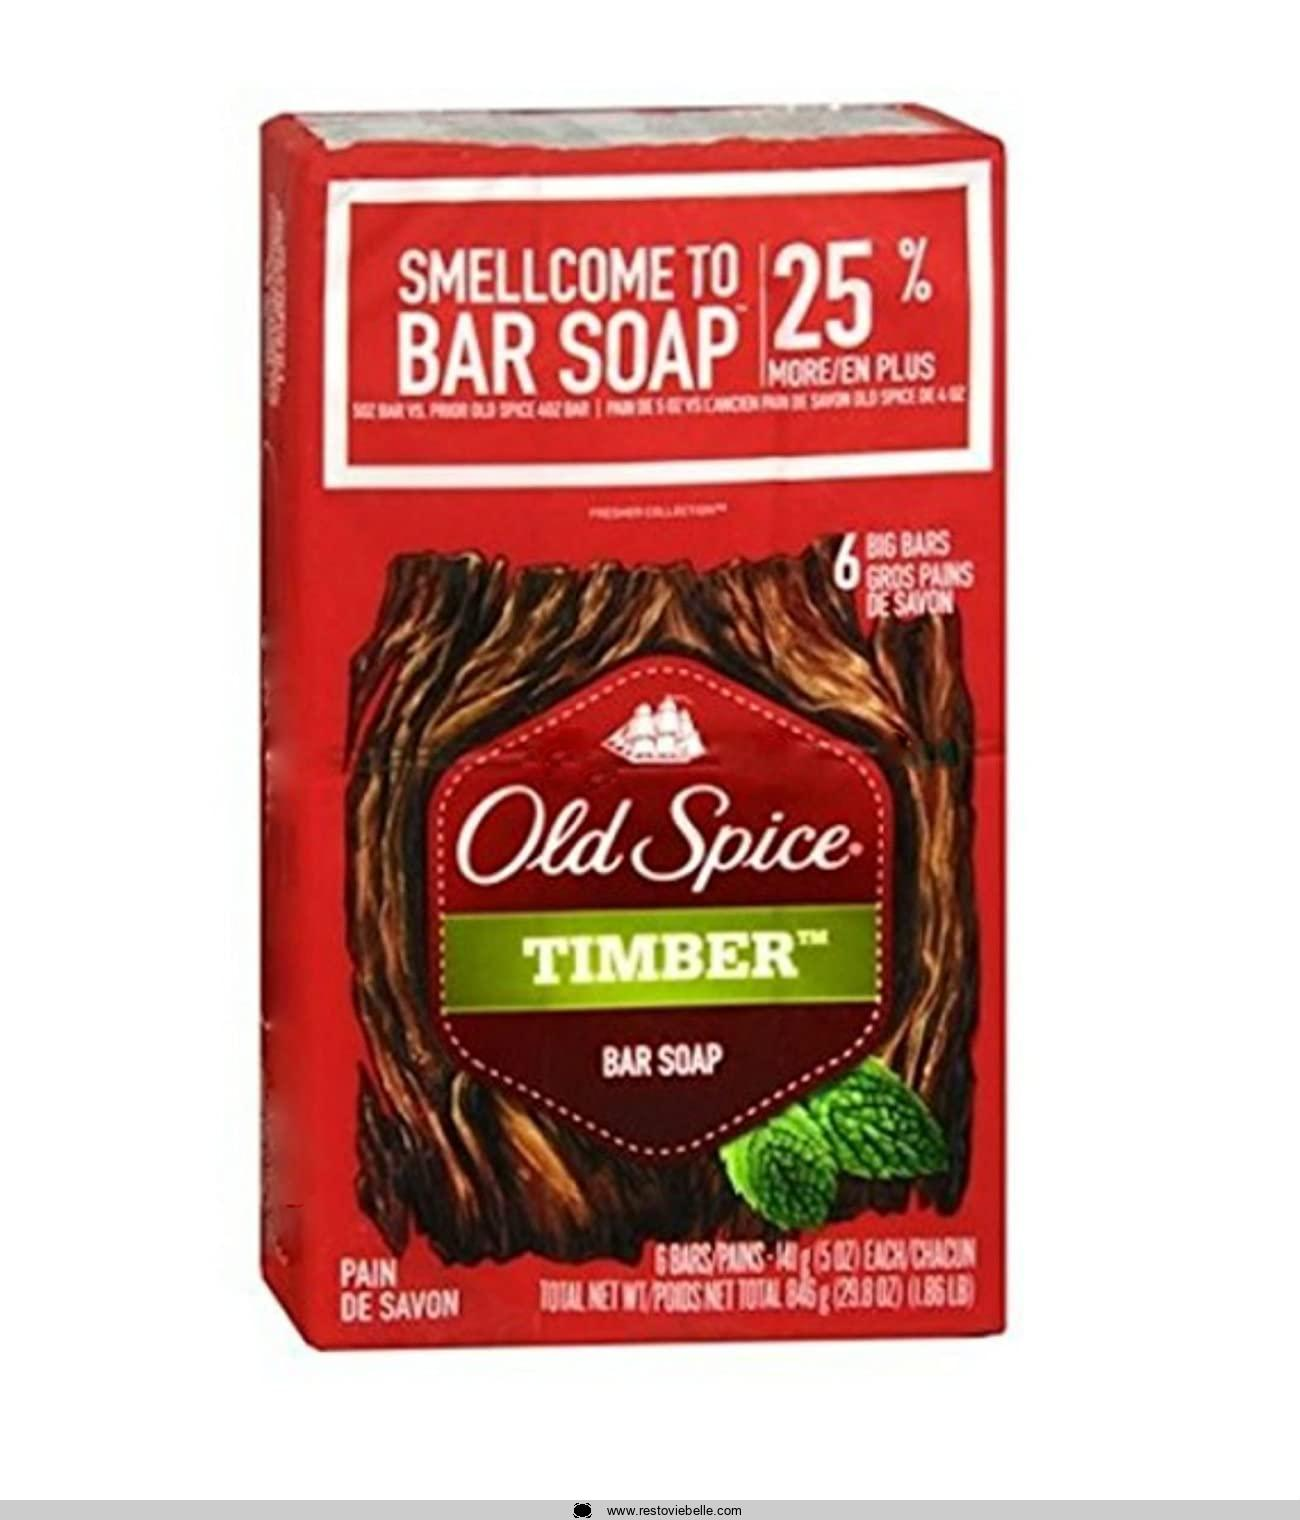 Old Spice Timber Bar Soap